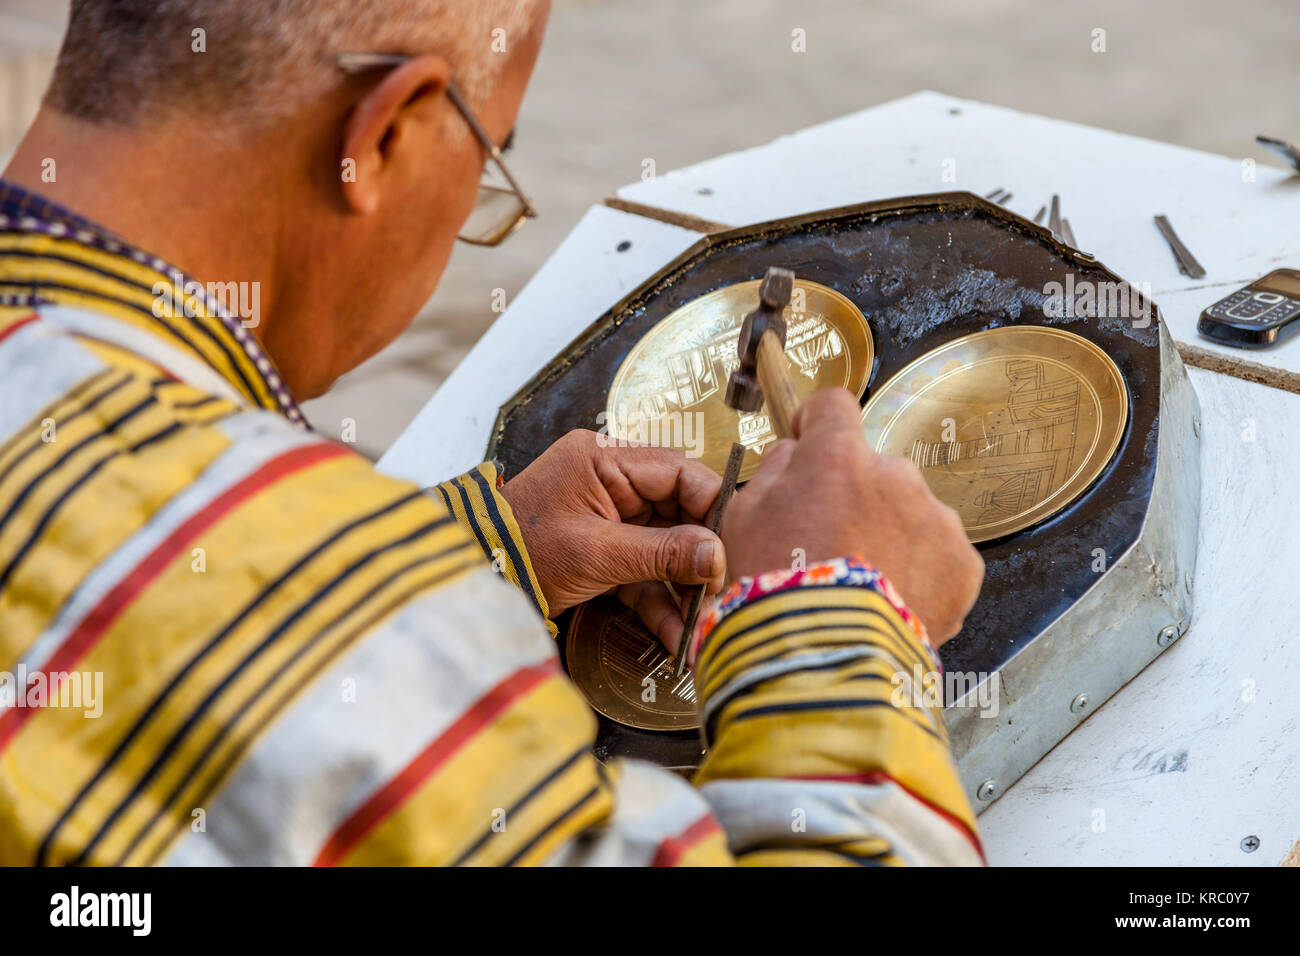 A Local Craftsman In Traditional Dress Engraving A Brass Plate In The Market, Bukhara, Uzbekistan - Stock Image